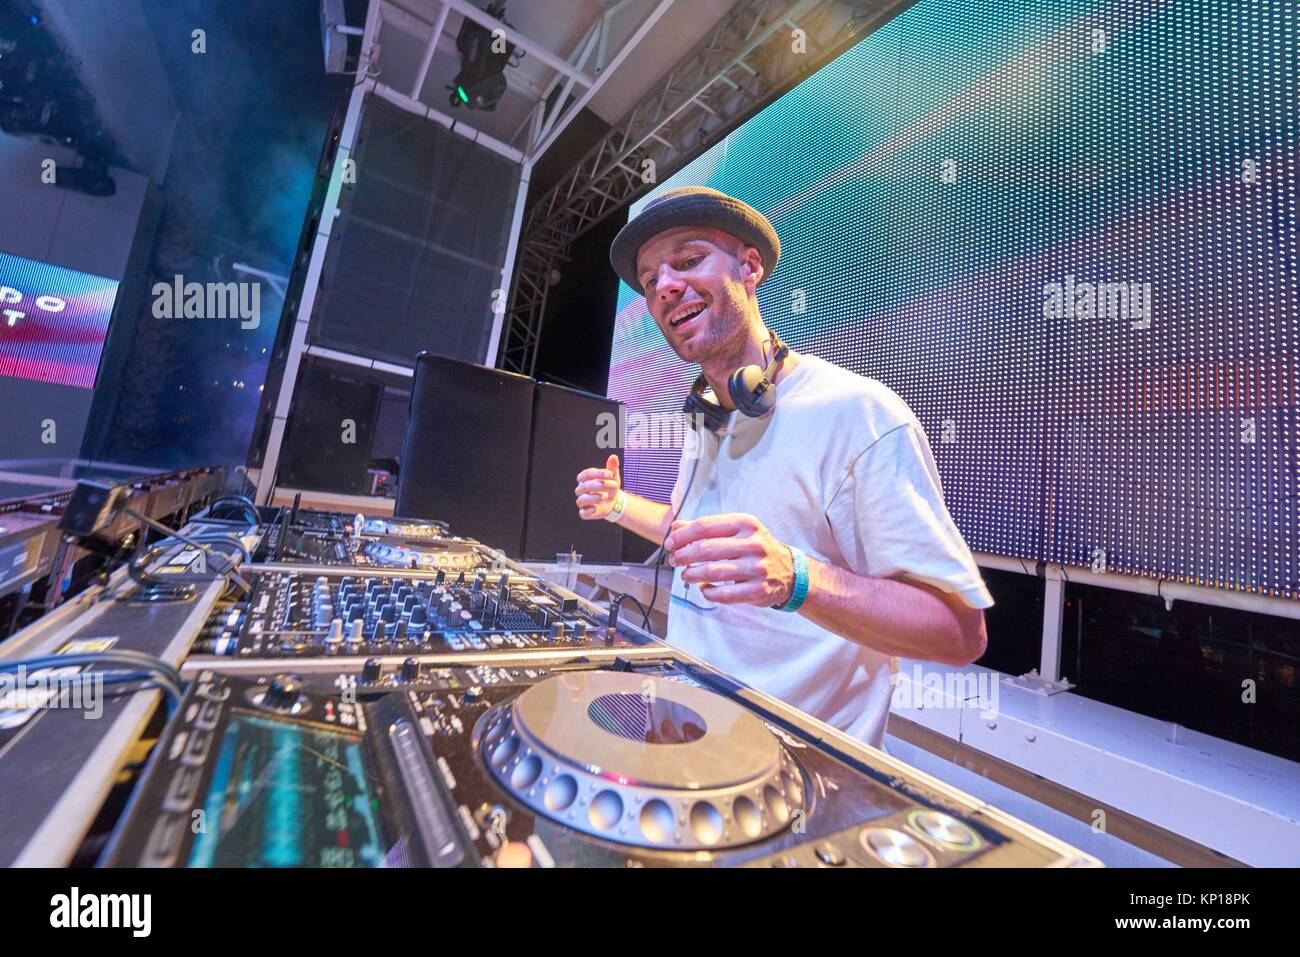 DJ New ID at edm music festival Starbeach in Hersonissos, Crete, Greece, on 21. August 2017 - Stock Image